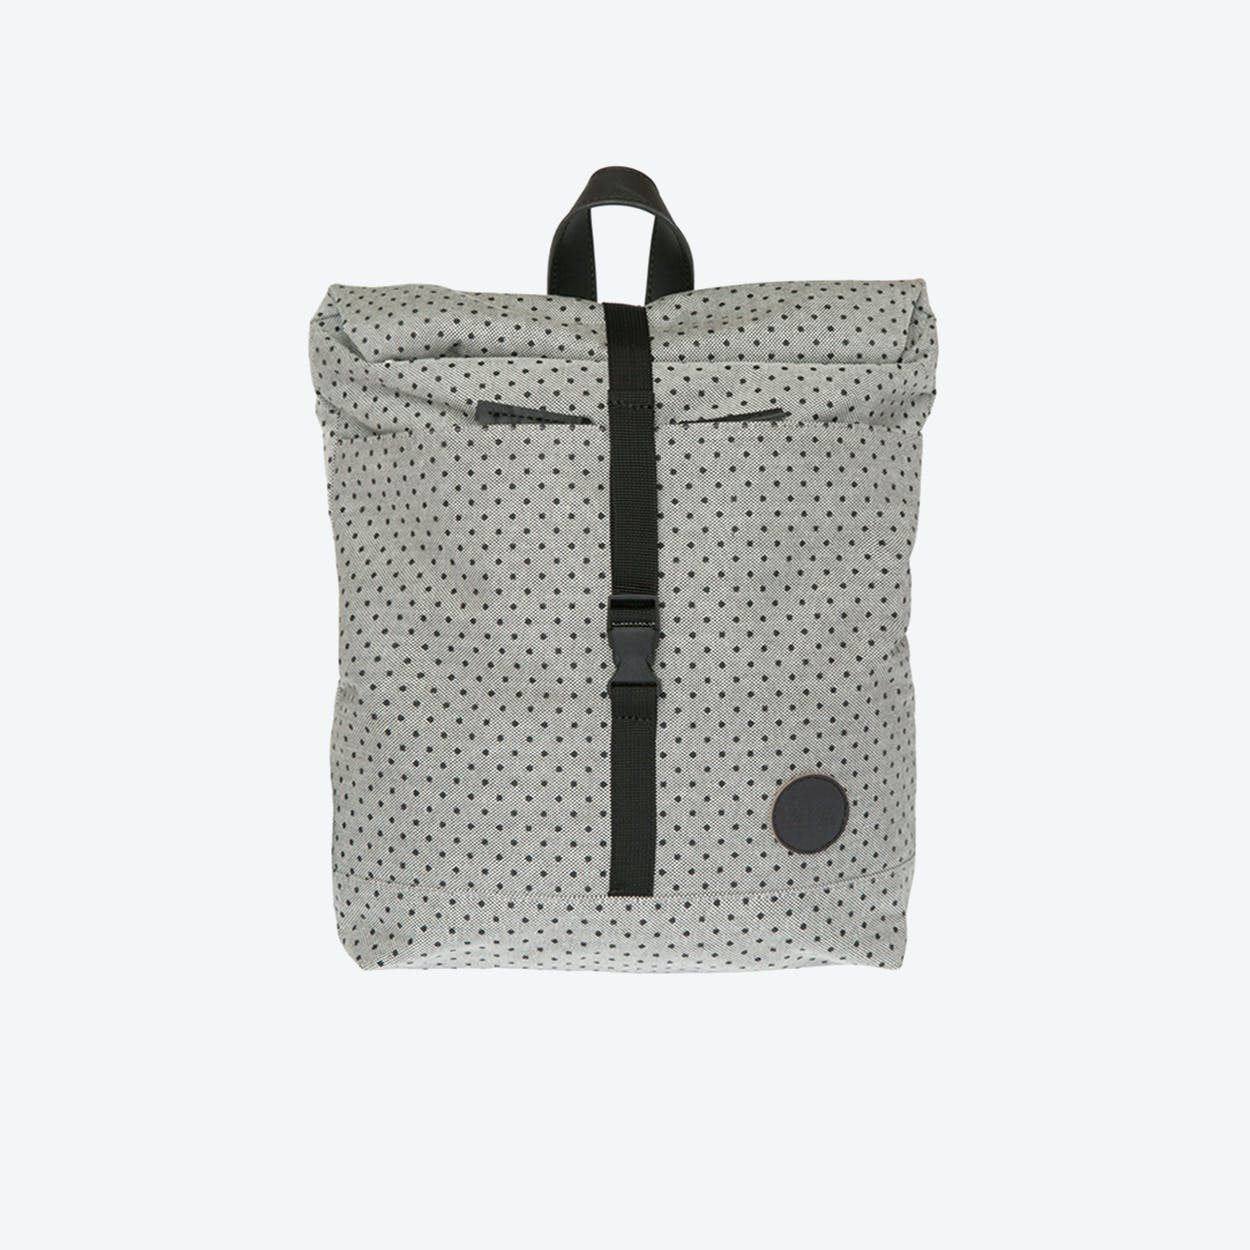 LS Roll Top Backpack Mini in Melange Black